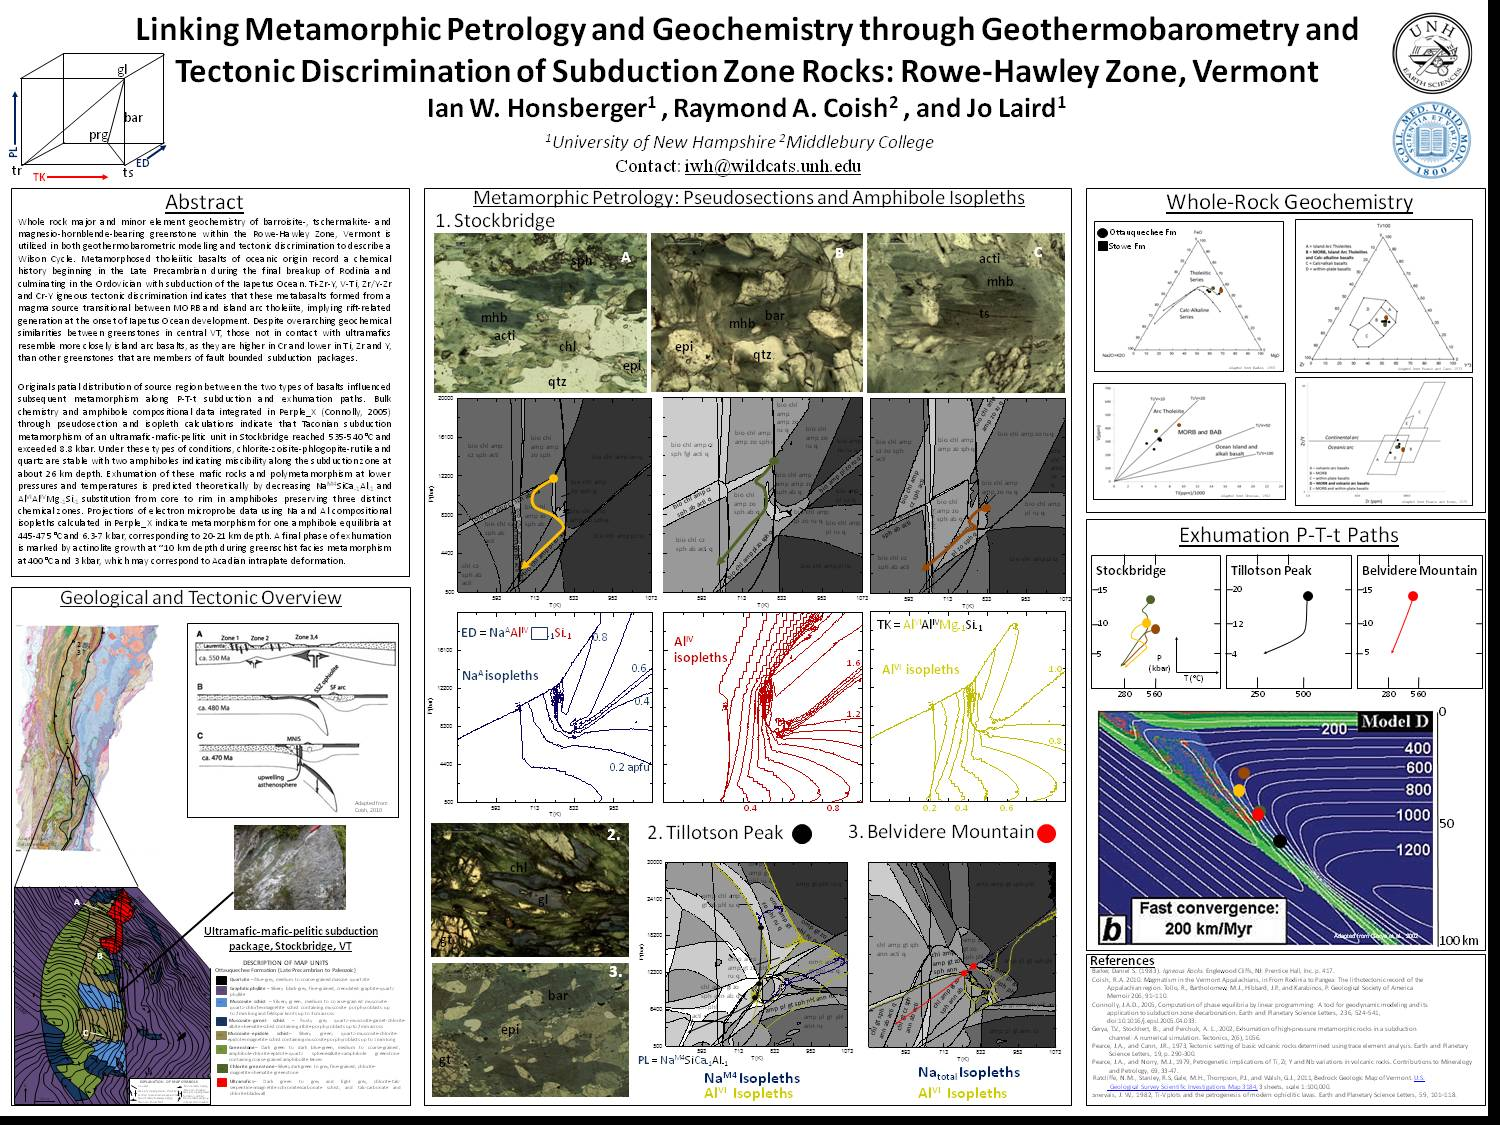 Linking Metamorphic Petrology And Geochemistry Through Geothermobarometry And Tectonic Discrimination Of Subduction Zone Rocks: Rowe-Hawley Zone, Vermont by iwh